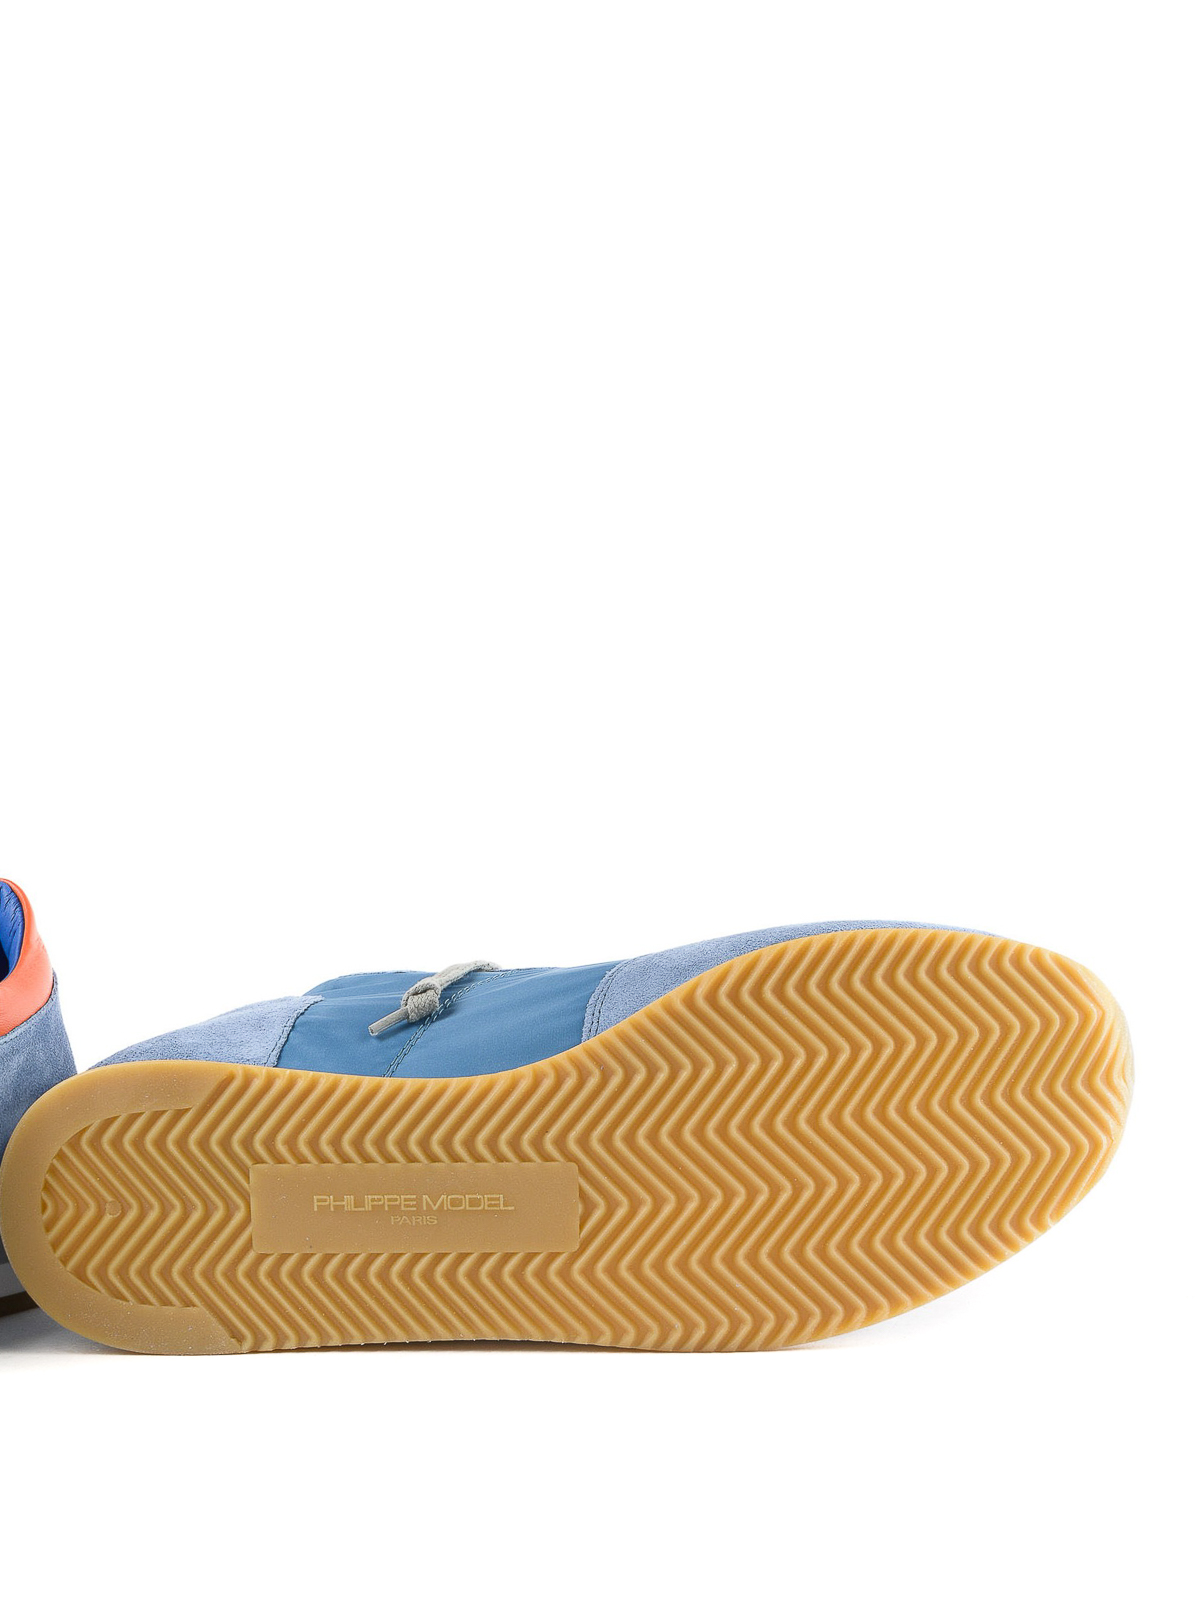 Philippe Model - Tropez light blue sneakers - trainers - TRLU 1104 af9a02ac470